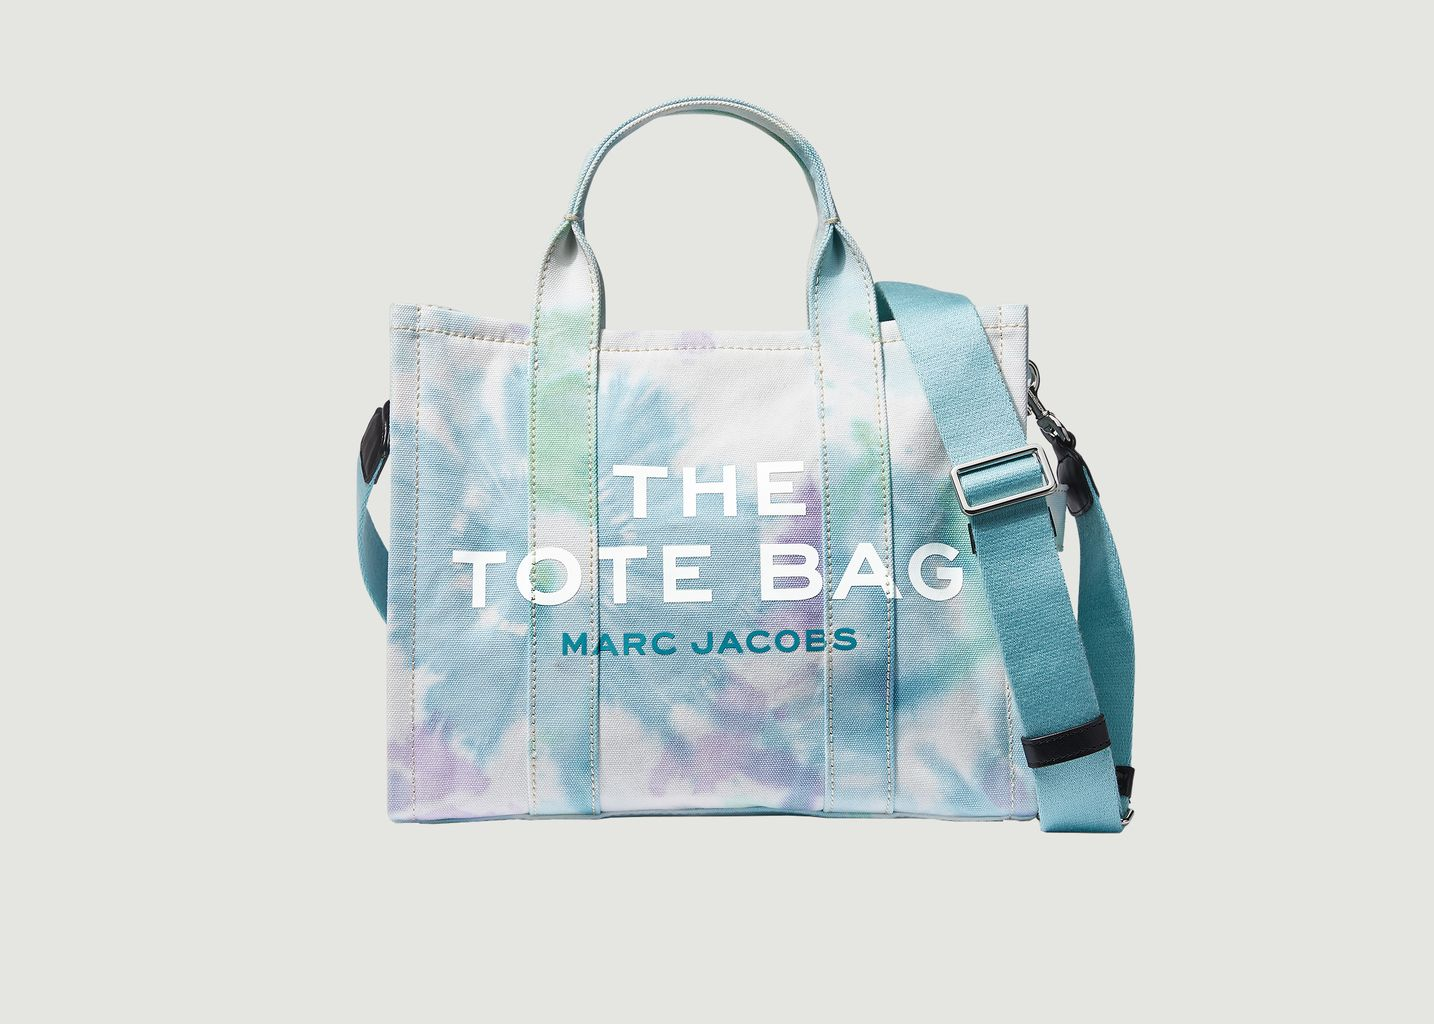 Cabas Traveler - Marc Jacobs (THE)